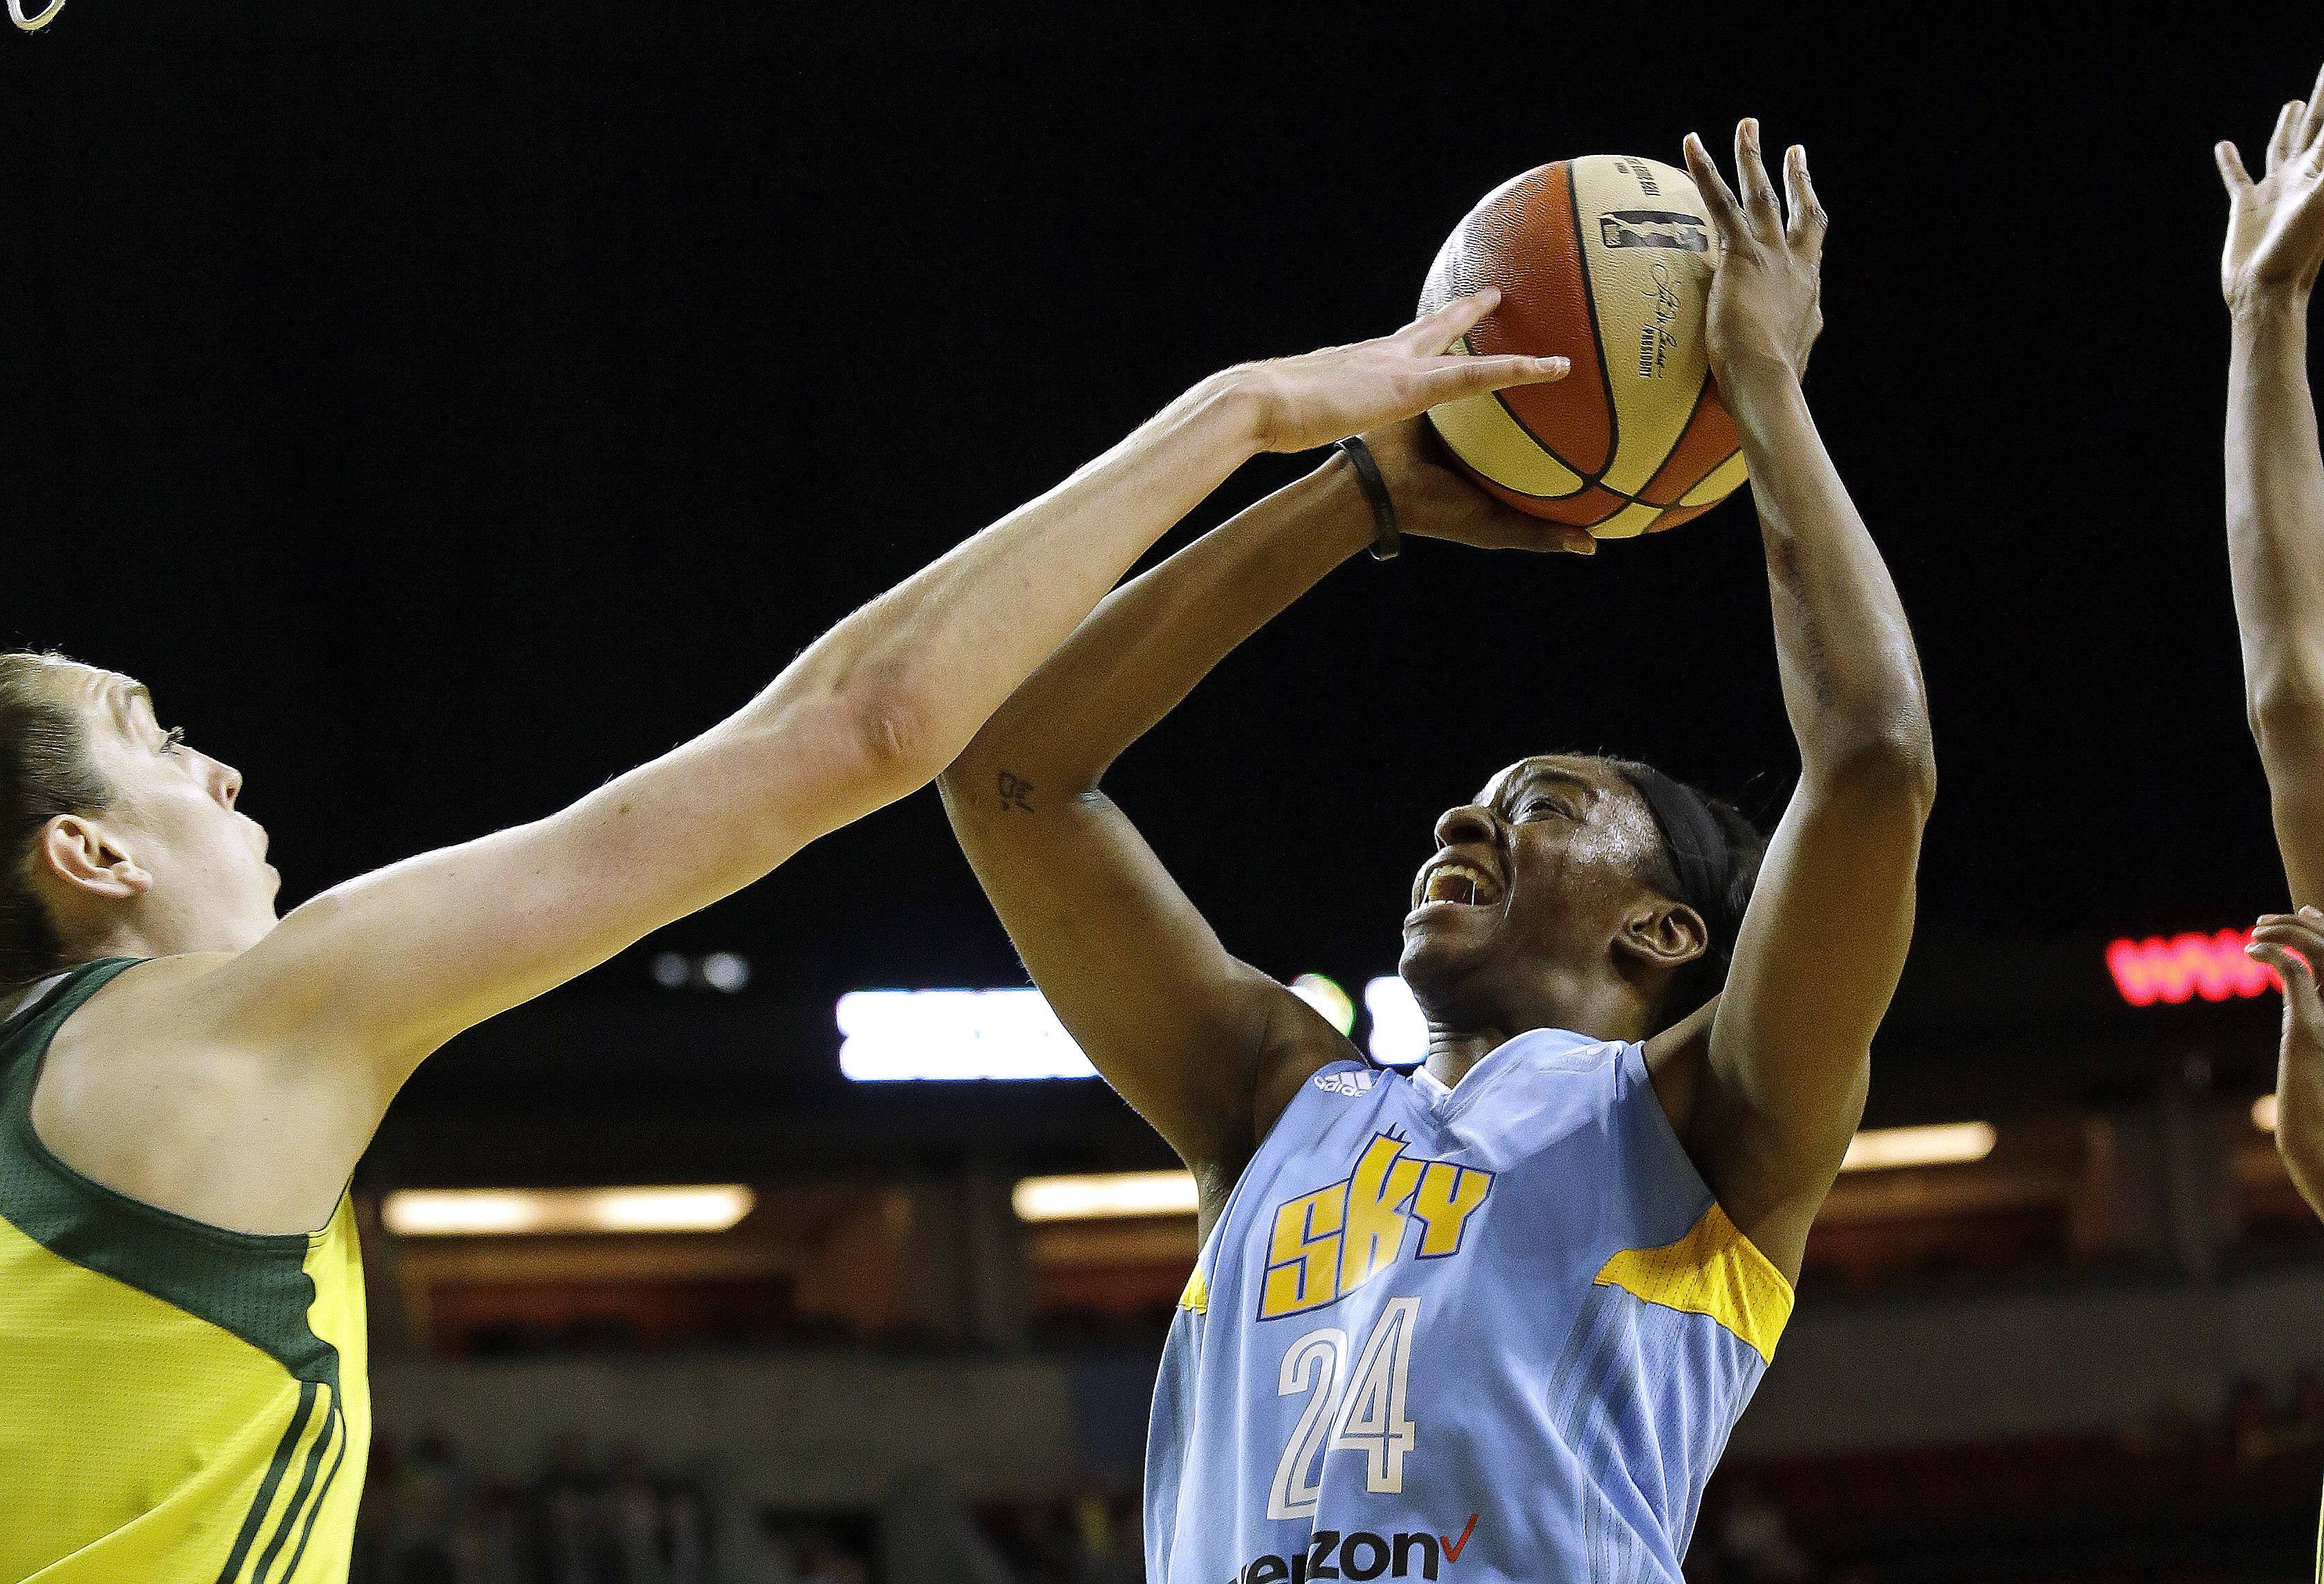 Seattle Storm's Breanna Stewart, left, tips away a shot by Chicago Sky's Keisha Hampton during the first half of a WNBA basketball game Tuesday, July 18, 2017, in Seattle.